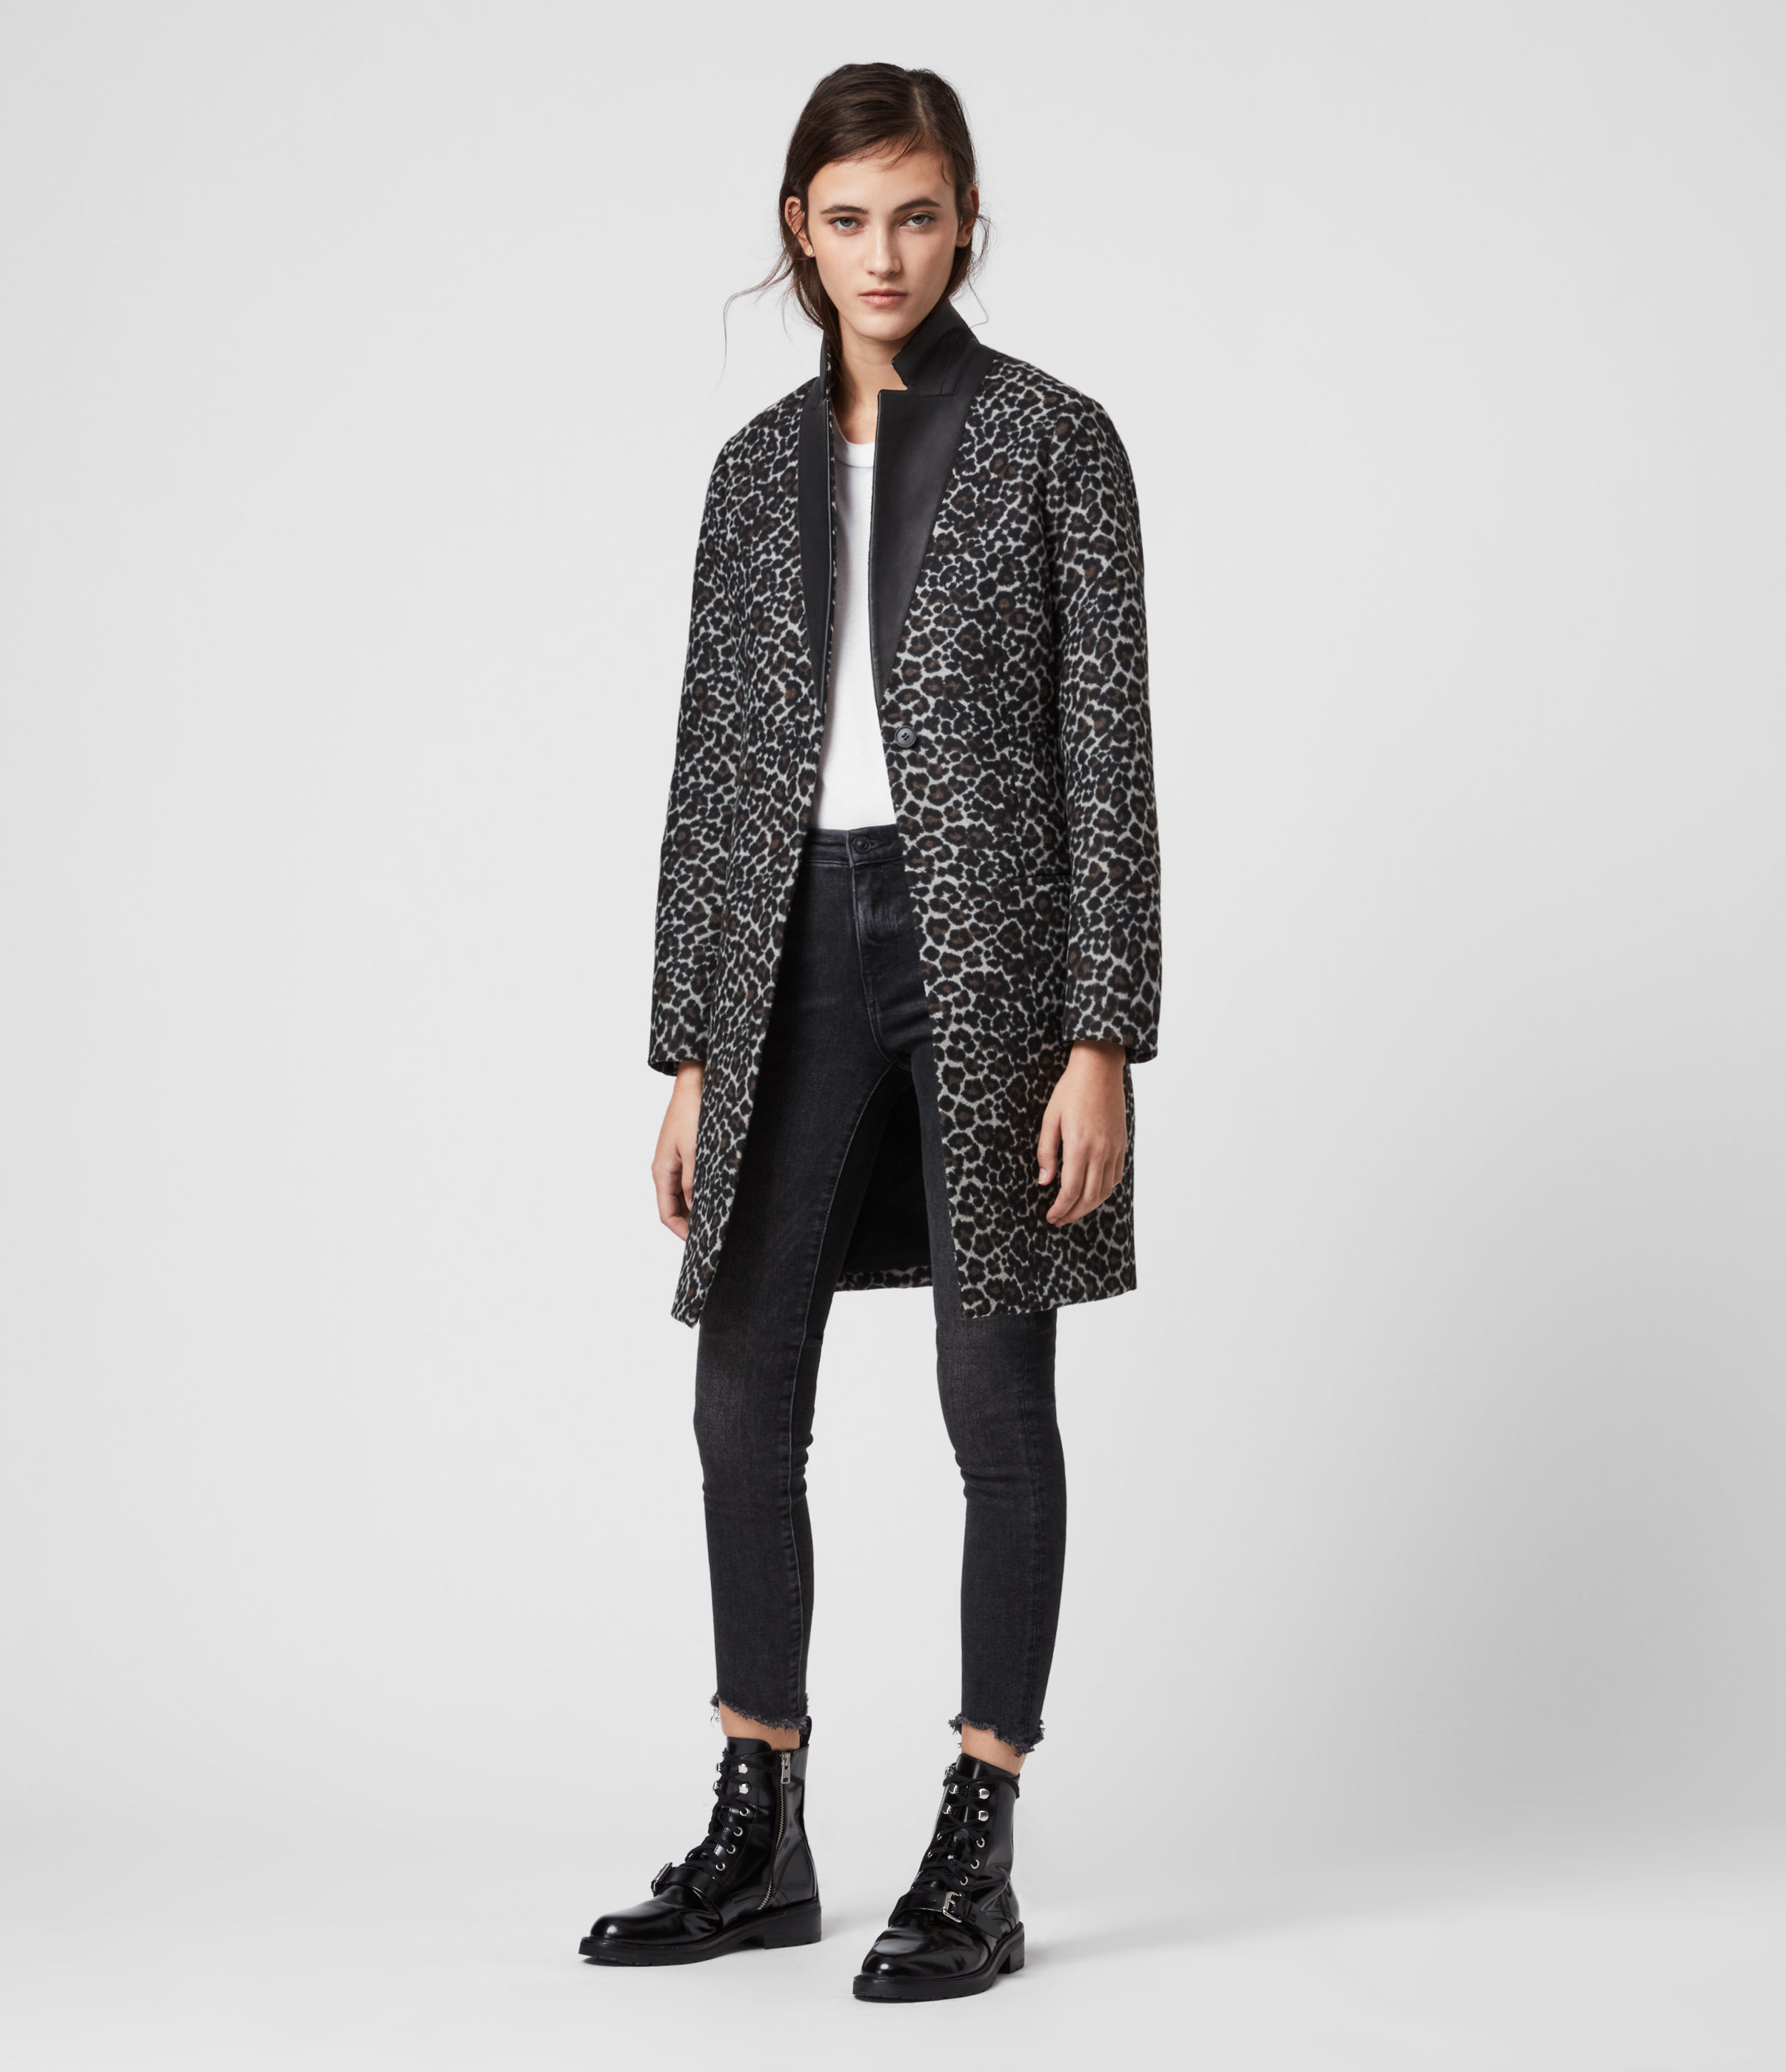 AllSaints Women's Leopard Print Slim Fit Leni Leo Coat, Brown, Size: 8